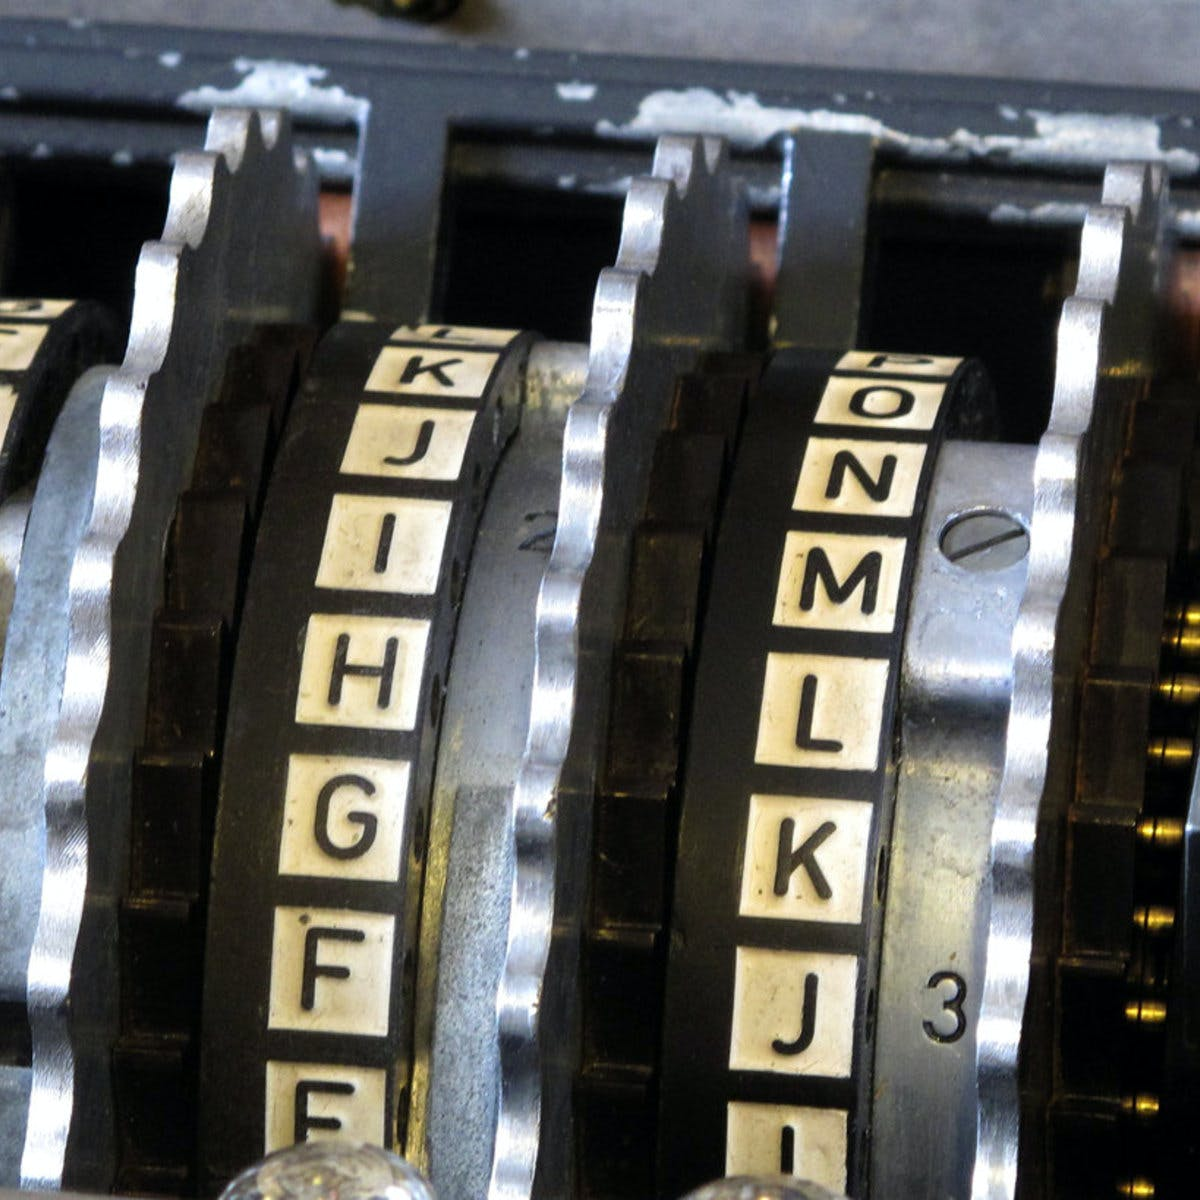 Asymmetric Cryptography and Key Management